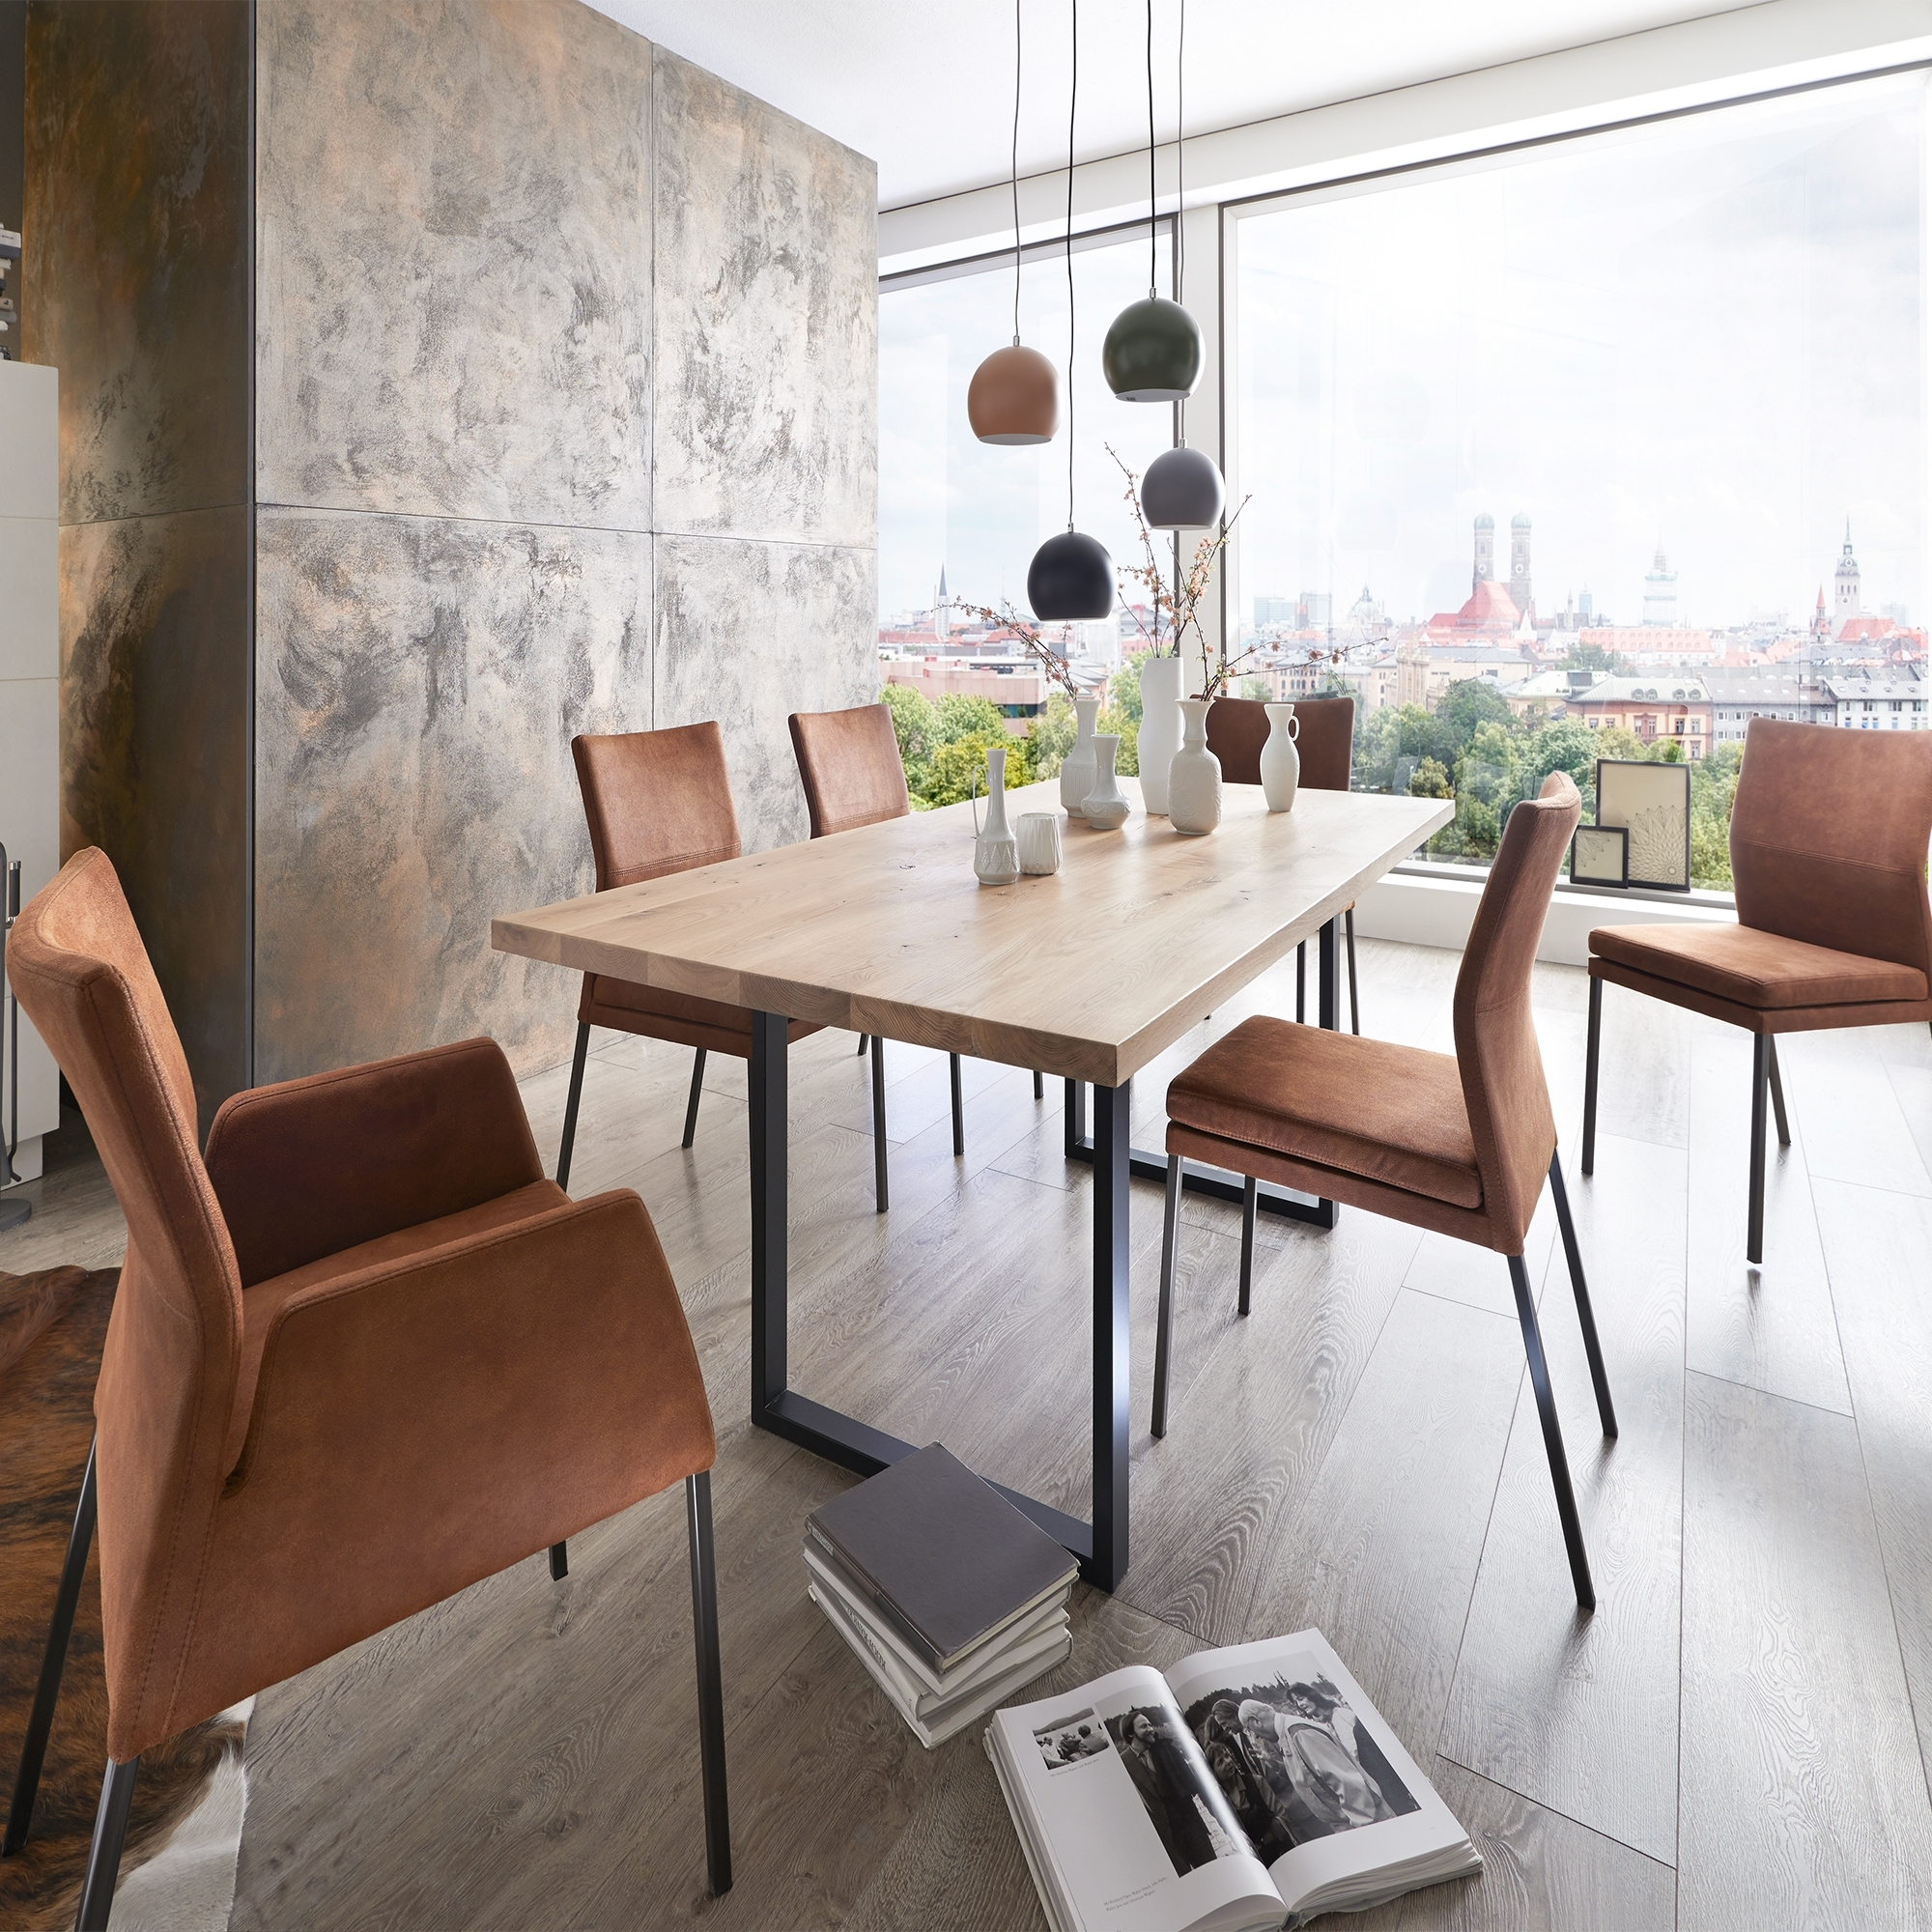 Fargo Dining Table 180cm 2 Armchairs And 4 Side Chairs Dining Sets